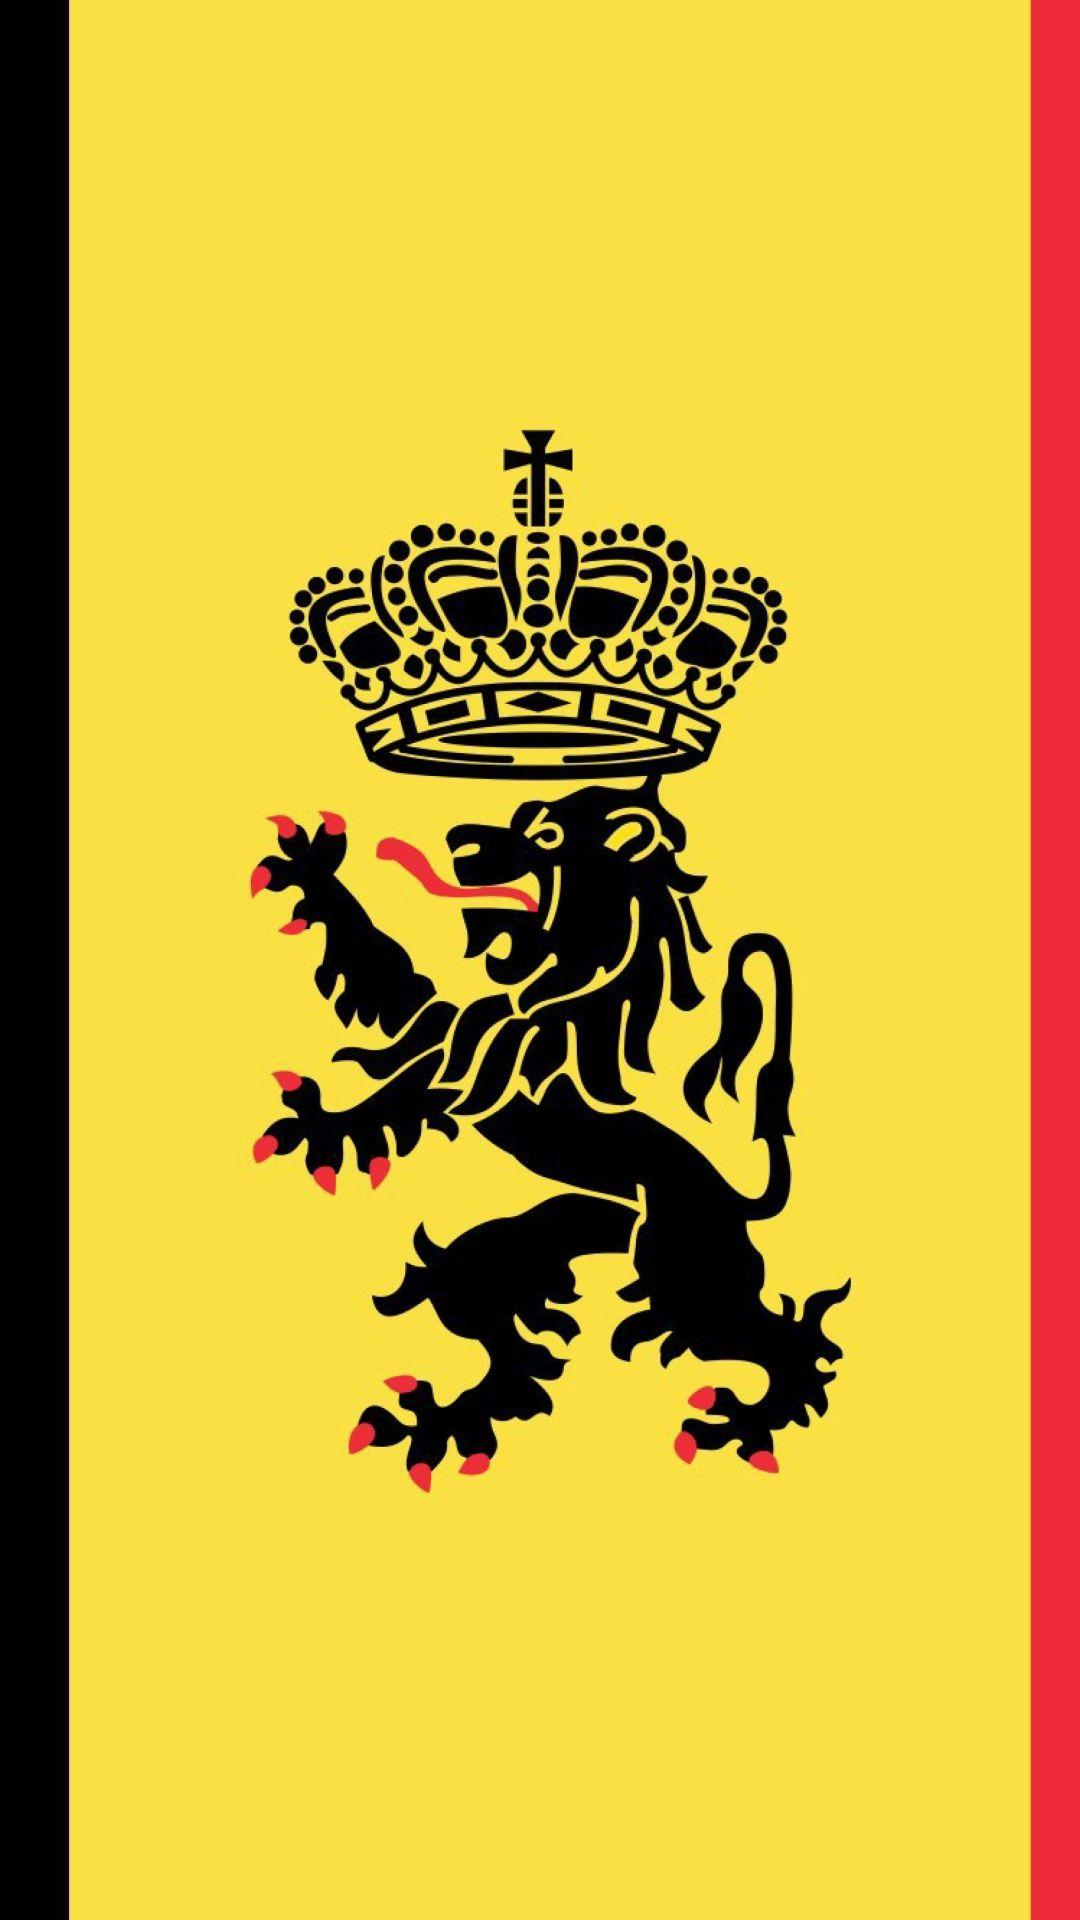 Belgium flag and gerb iphone wallpapers | iPhone Wallpapers